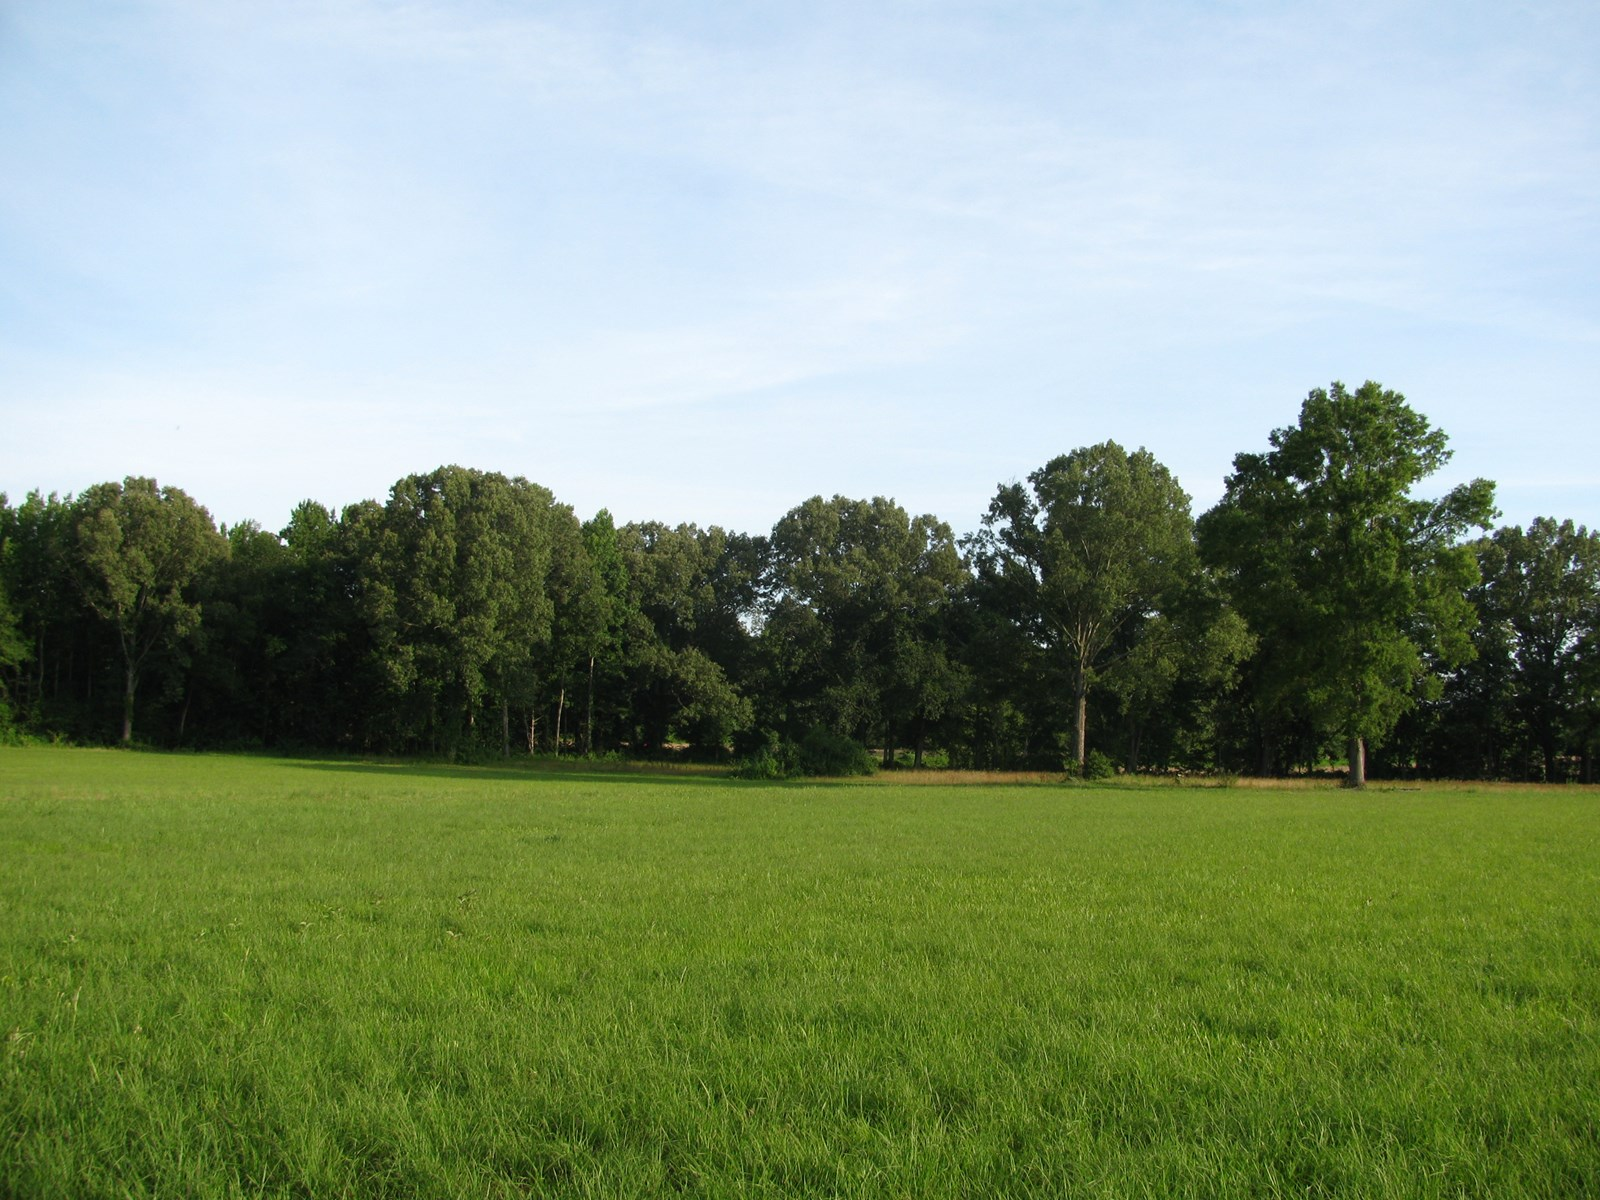 FARM LAND FOR SALE IN TN, BUILDING SITES, CREEK, 40 AC